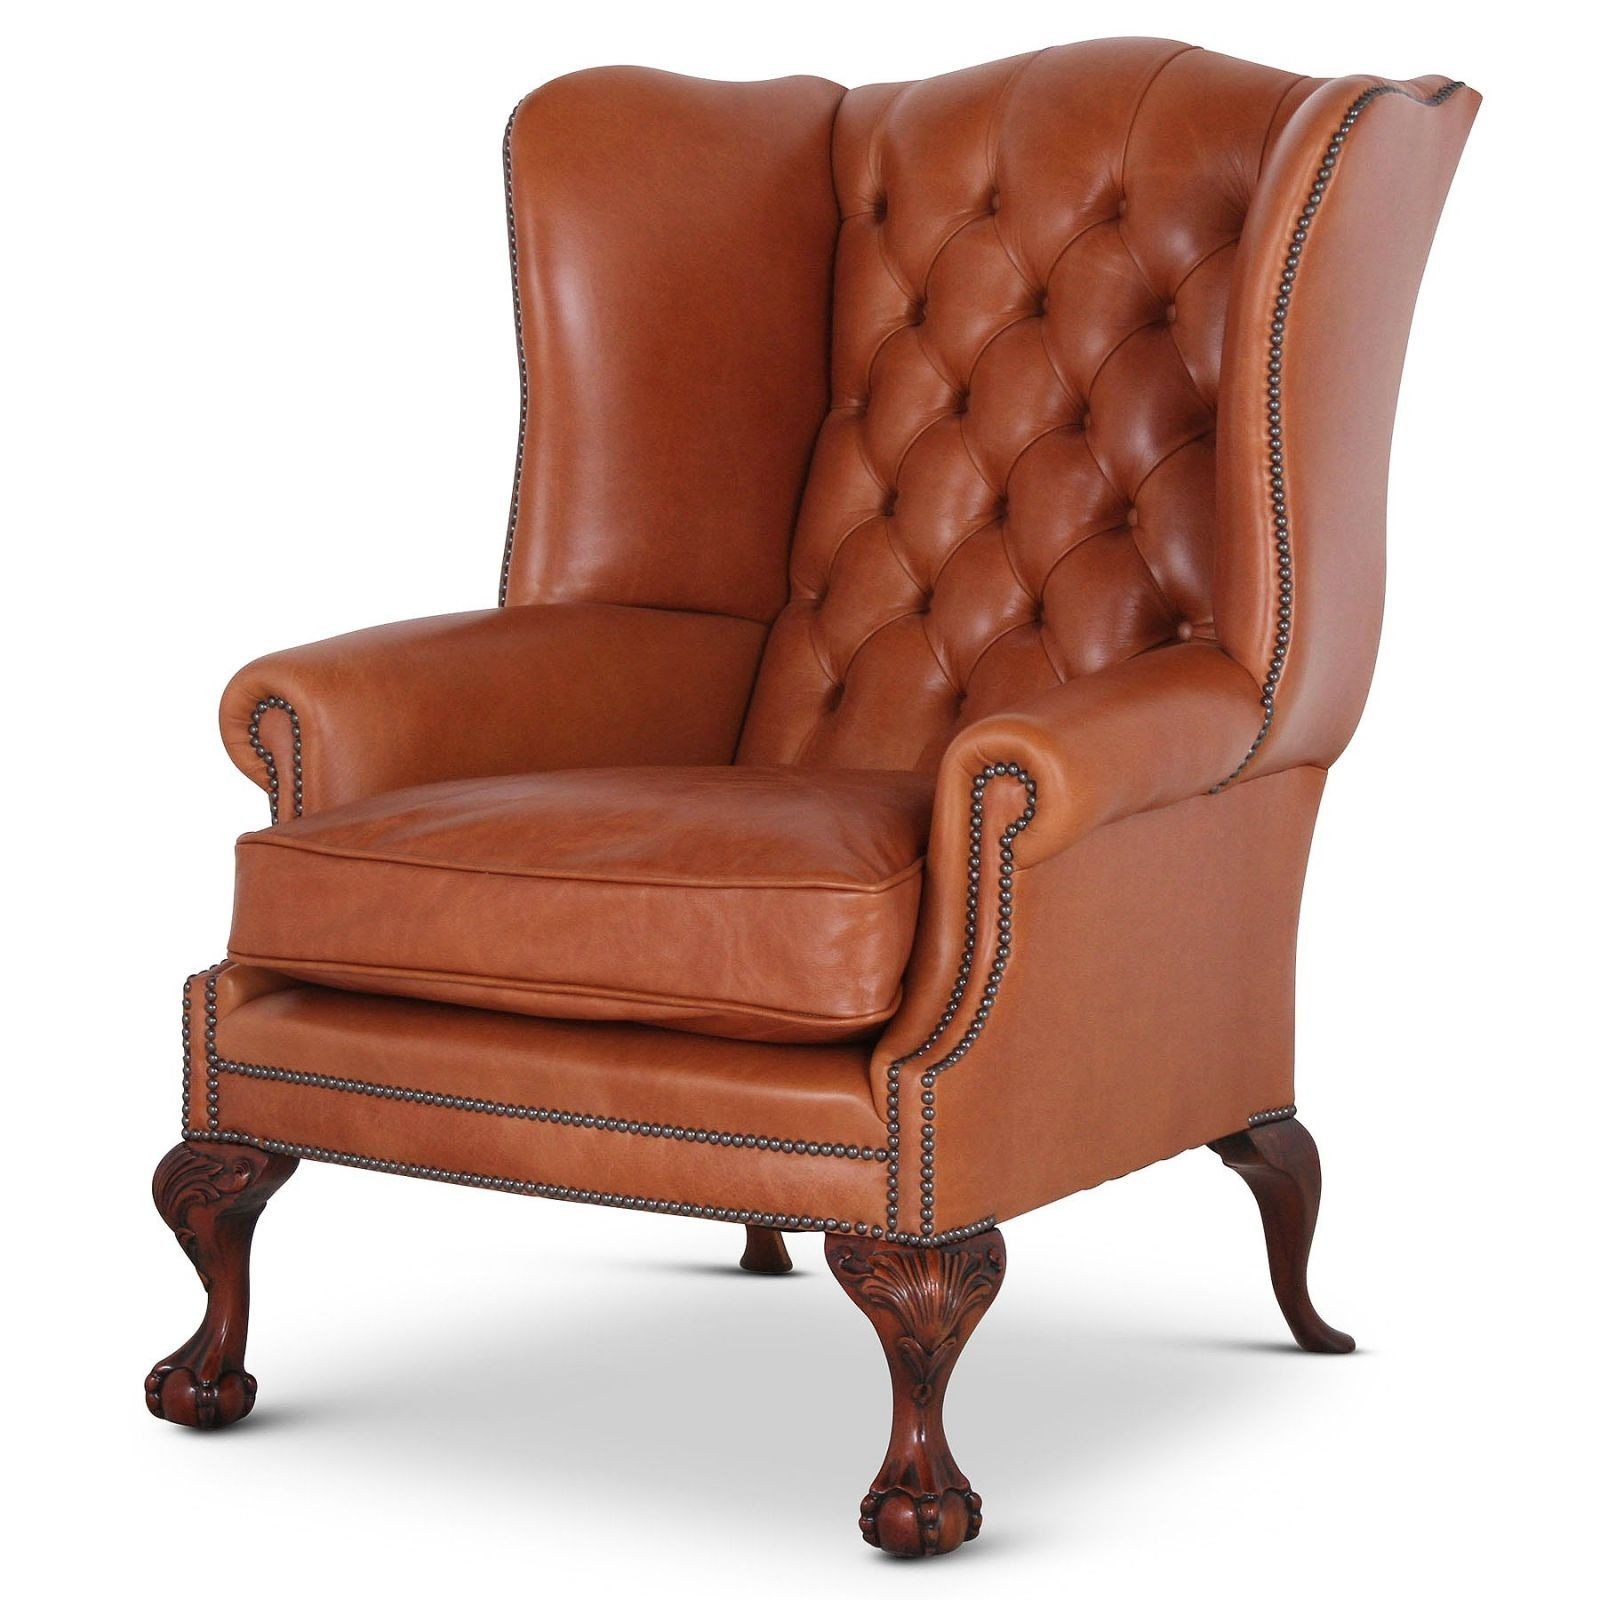 Coleridge buttoned tan leather wing chair